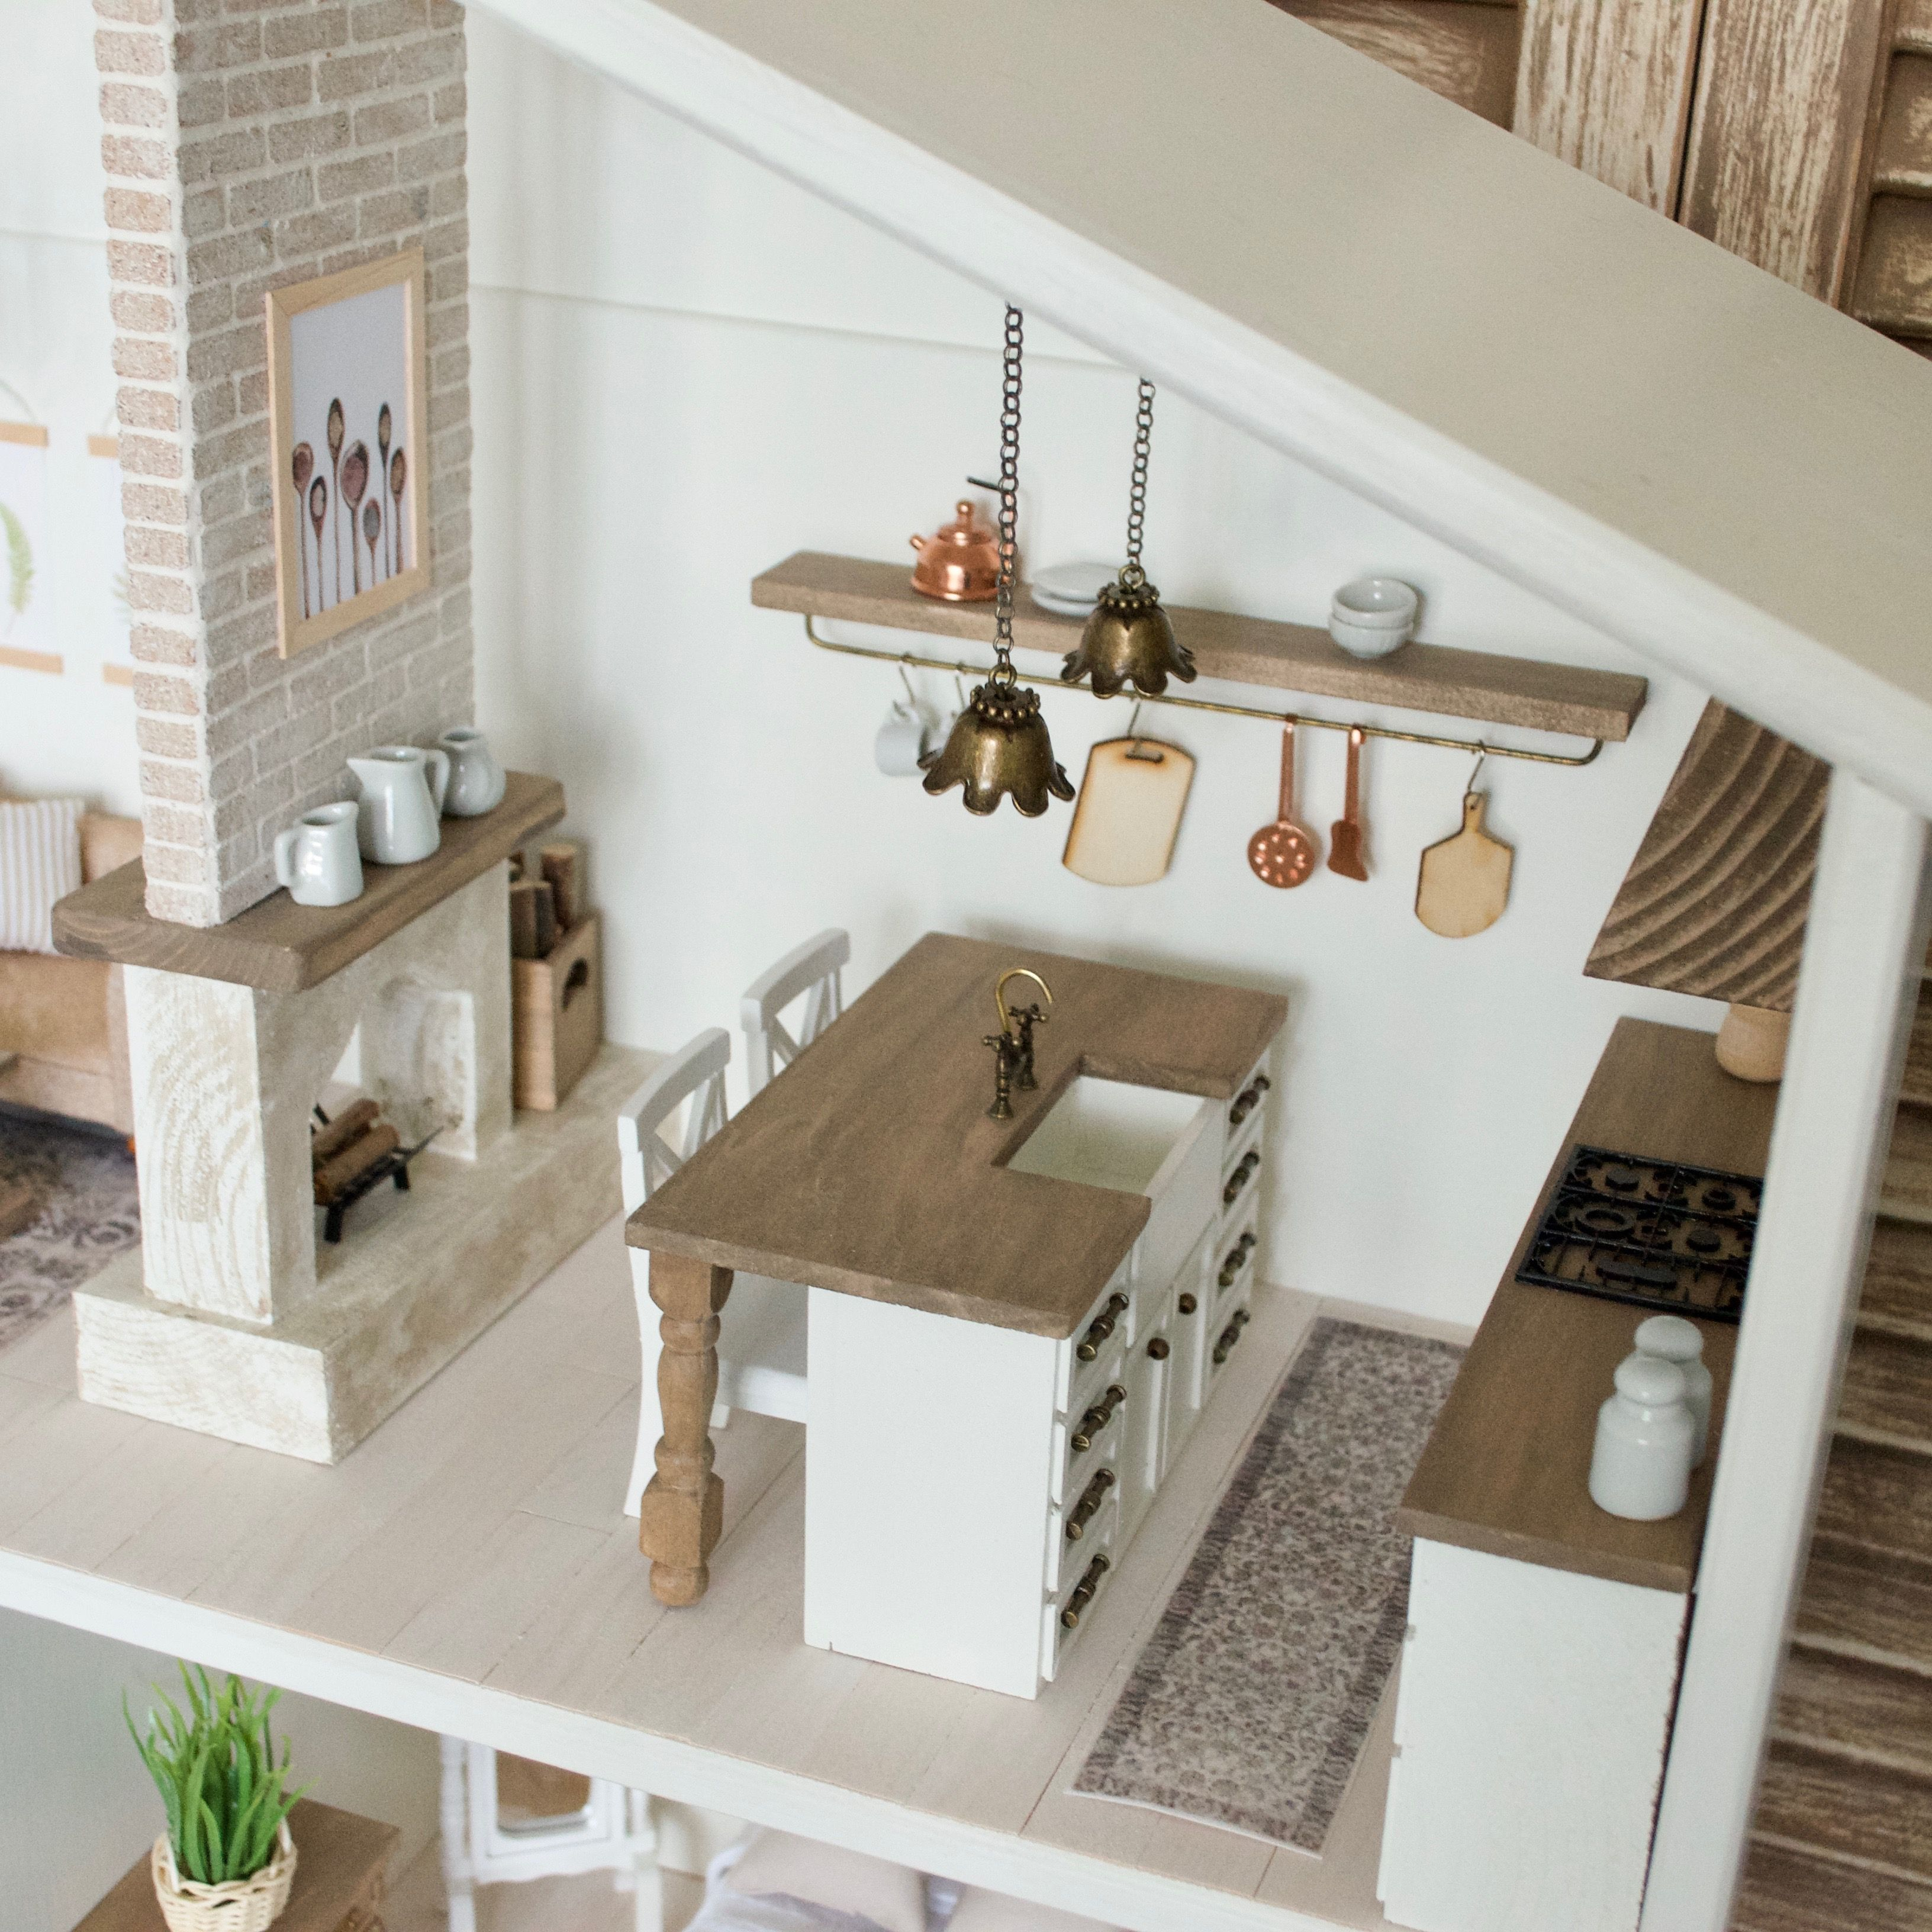 Mini Adventures Co. | Designer Dollhouses, Decor & Tutorials